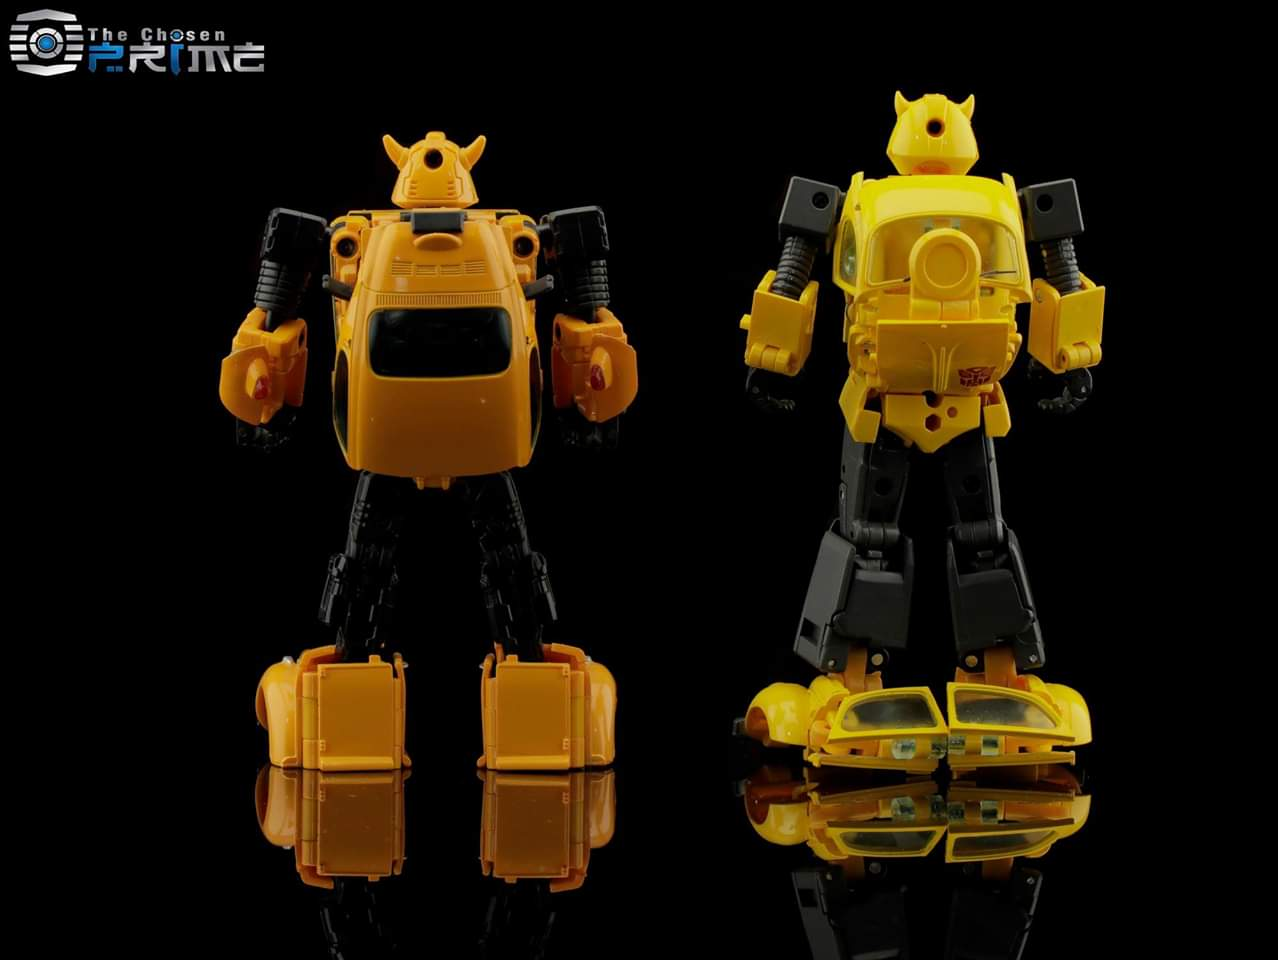 [Masterpiece] MP-45 Bumblebee/Bourdon v2.0 - Page 2 WMScJ9Oq_o